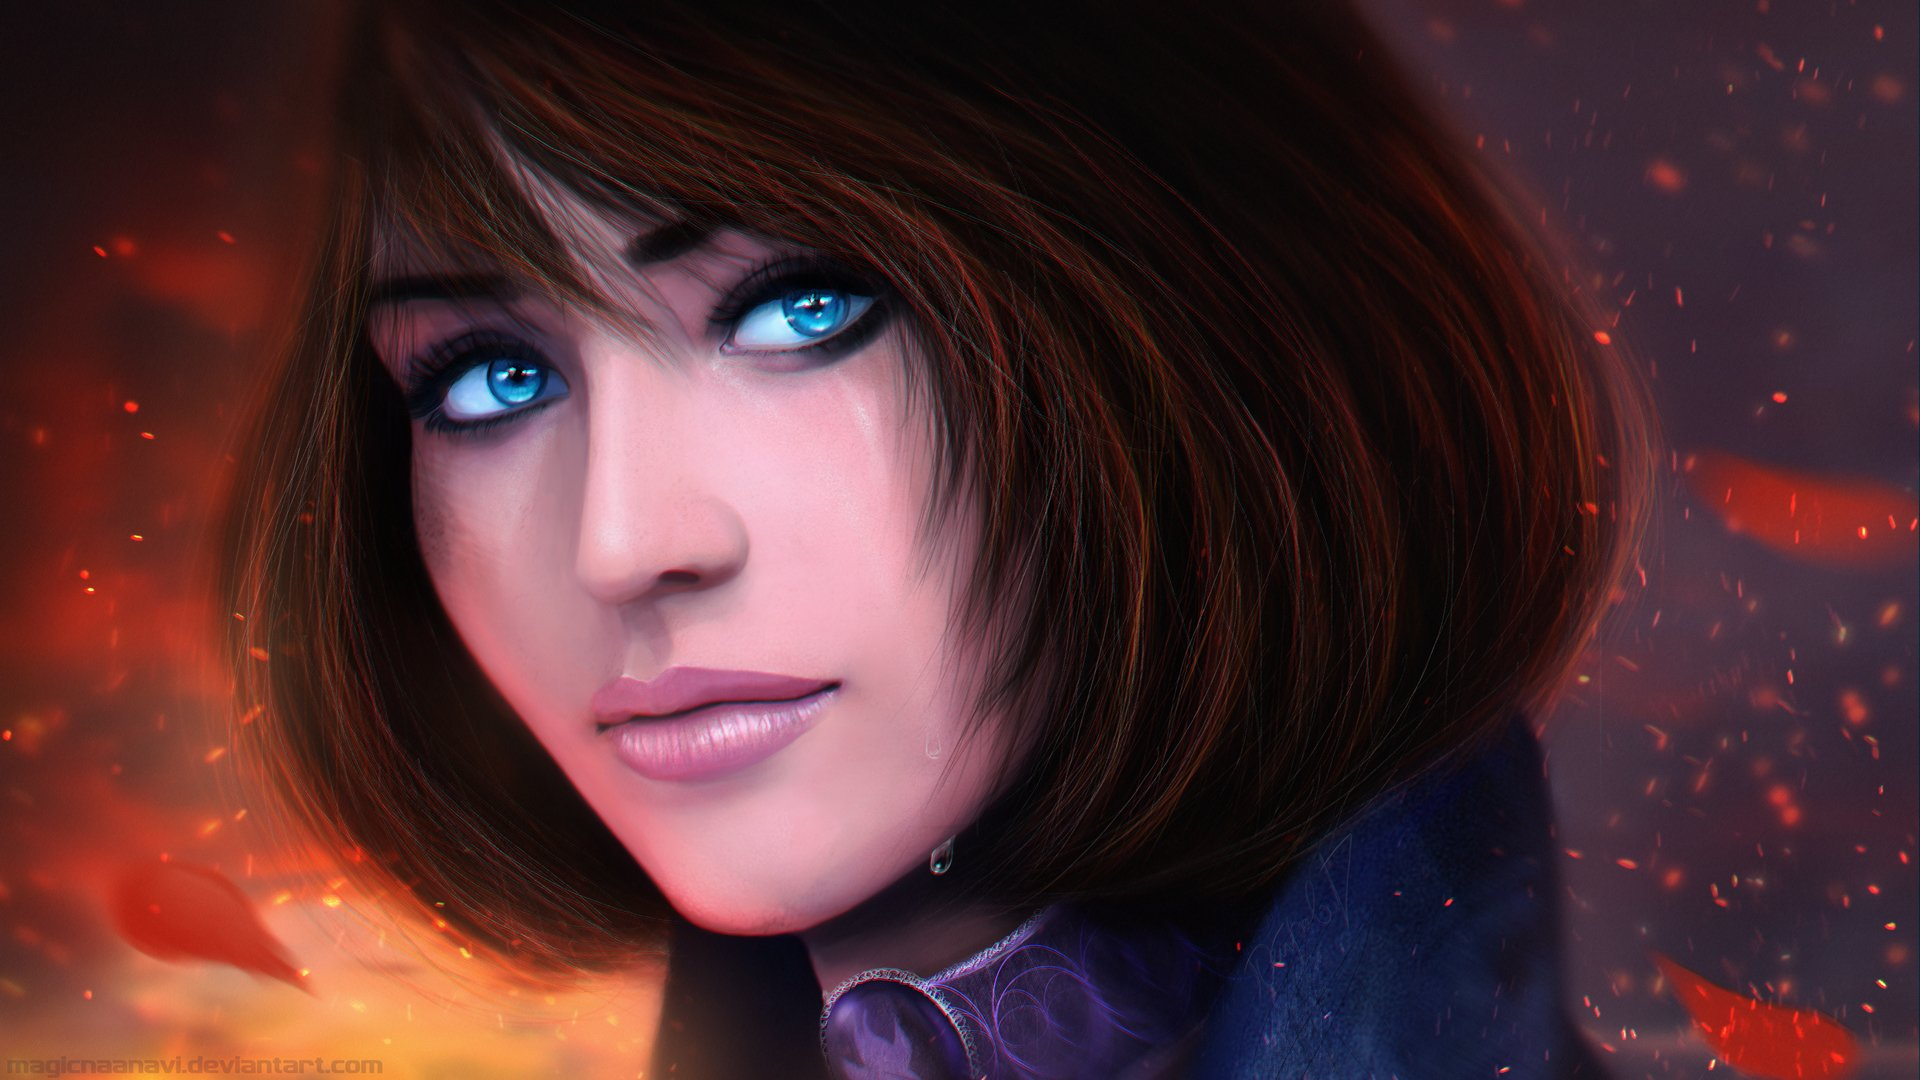 elizabeth bioshock infinite wallpapers - photo #34